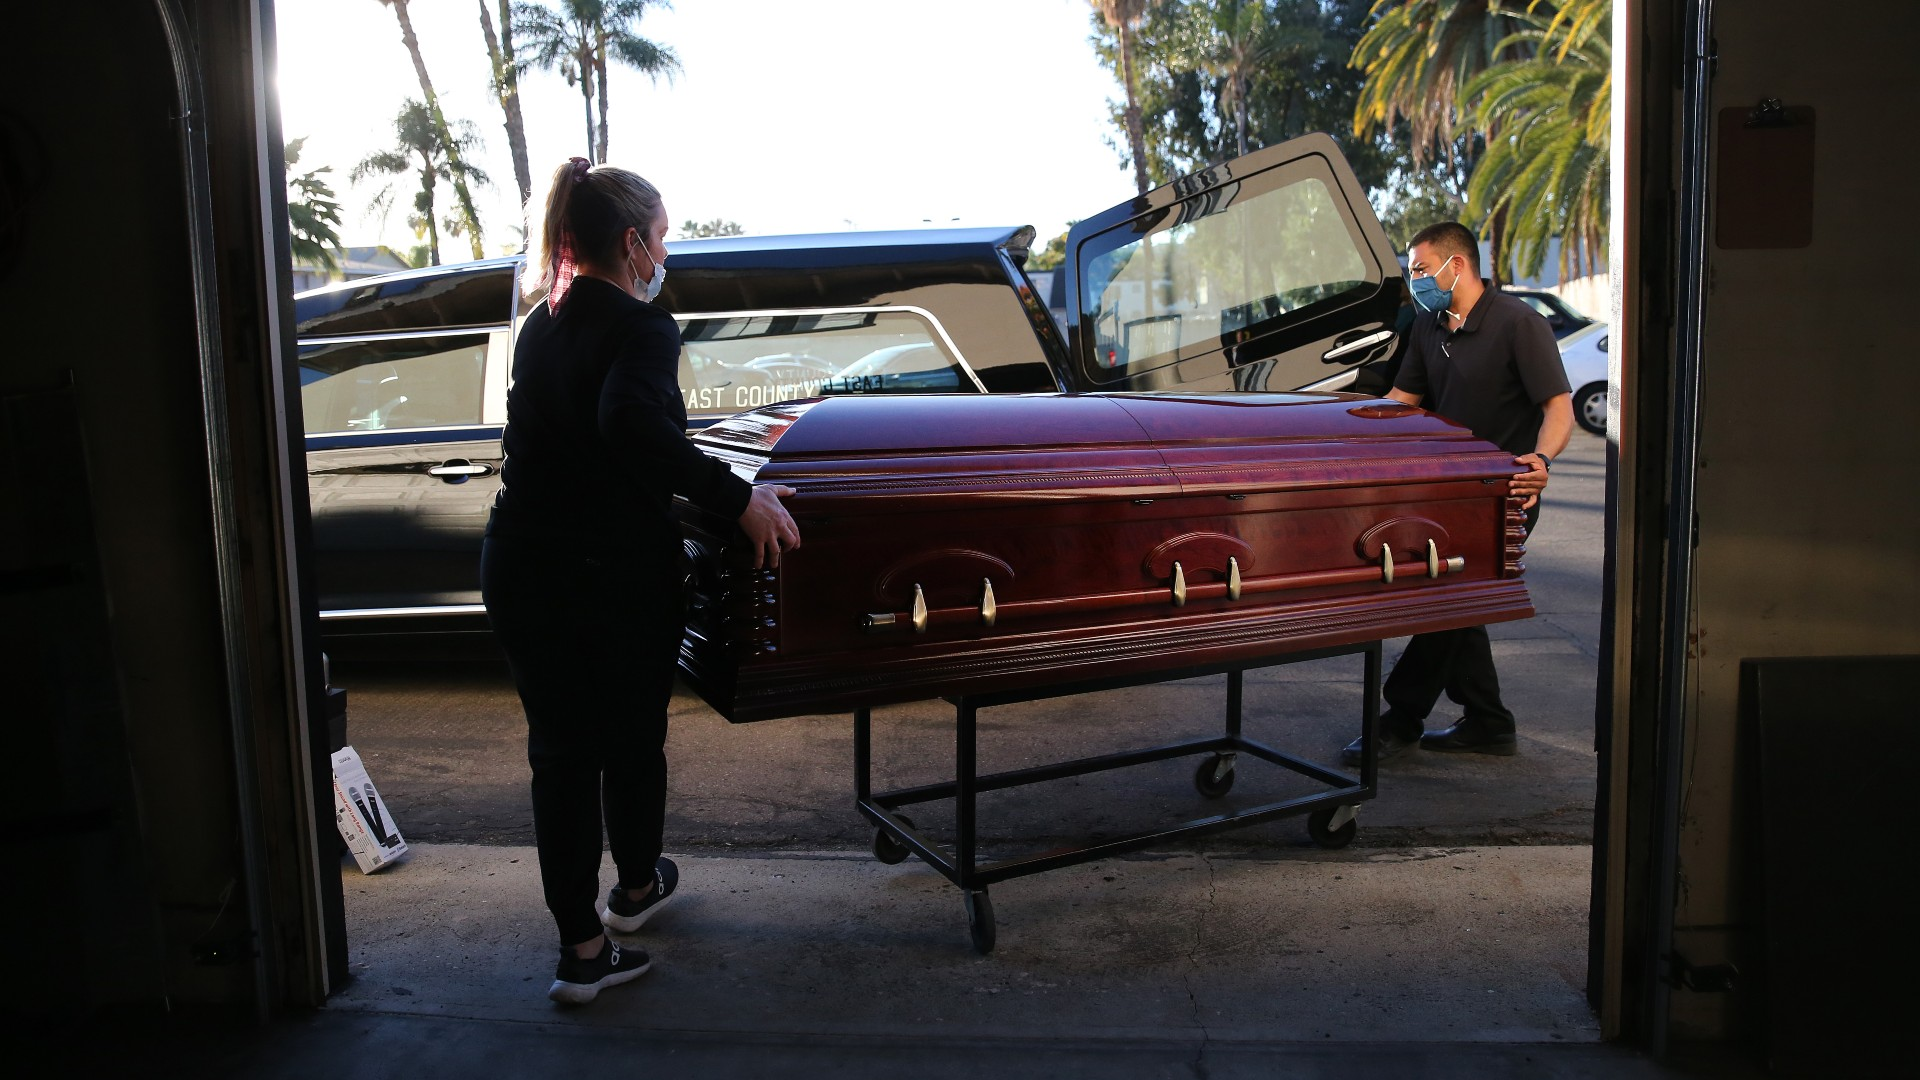 Catholic Cemeteries, Mortuaries to Offer Contactless Options Amid Pandemic